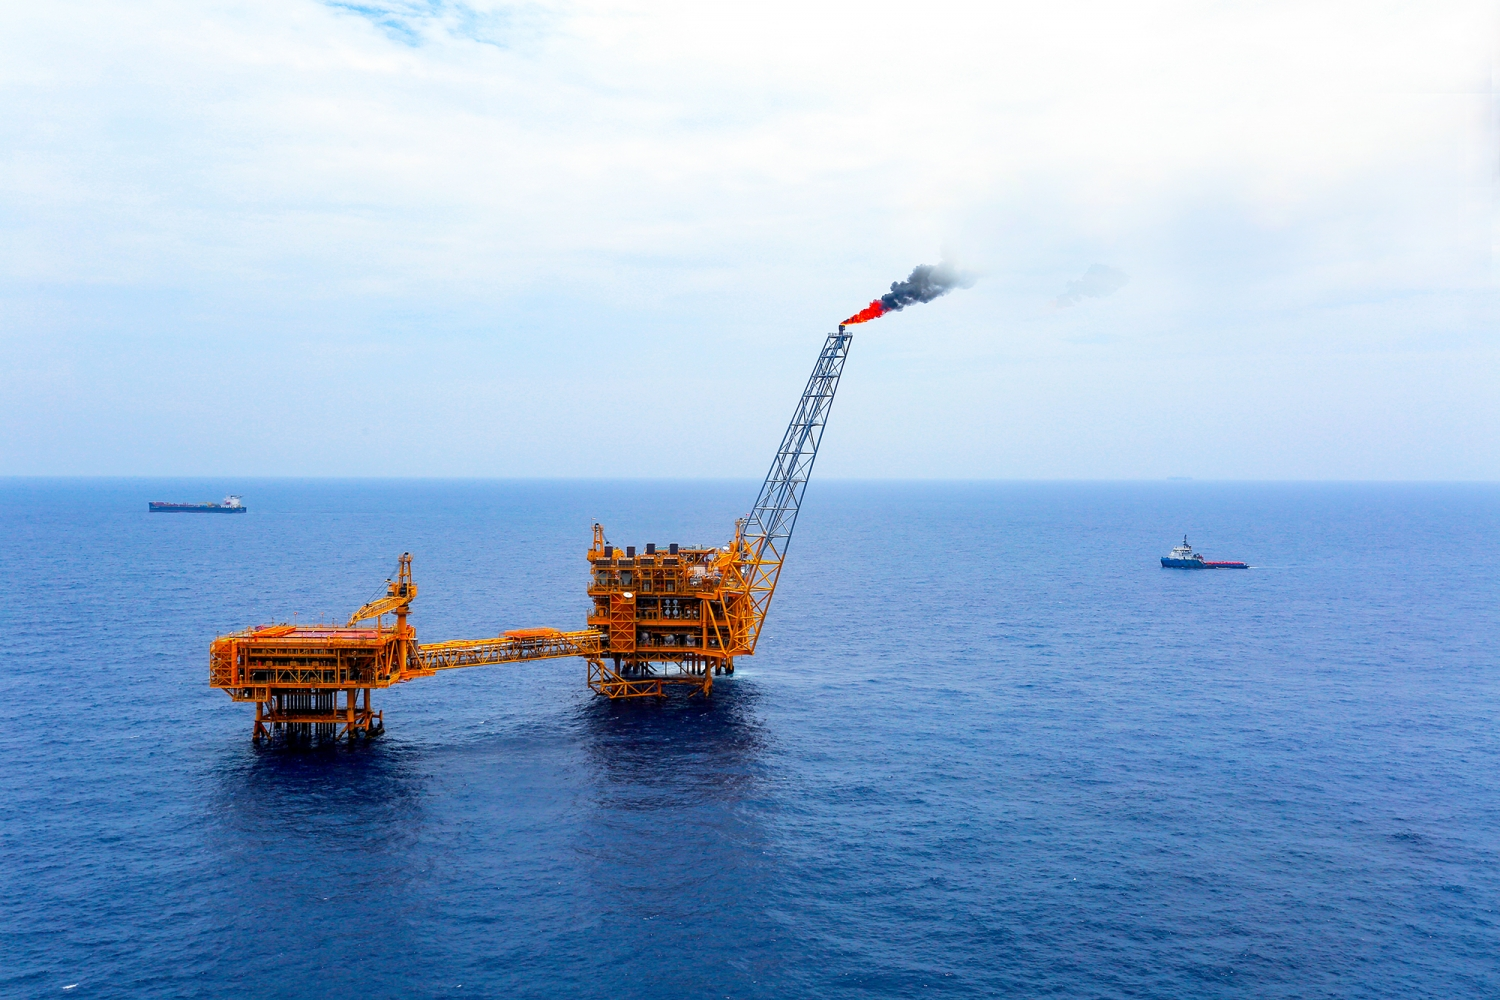 Petrovietnam: 44 years accompanying and developing with the country